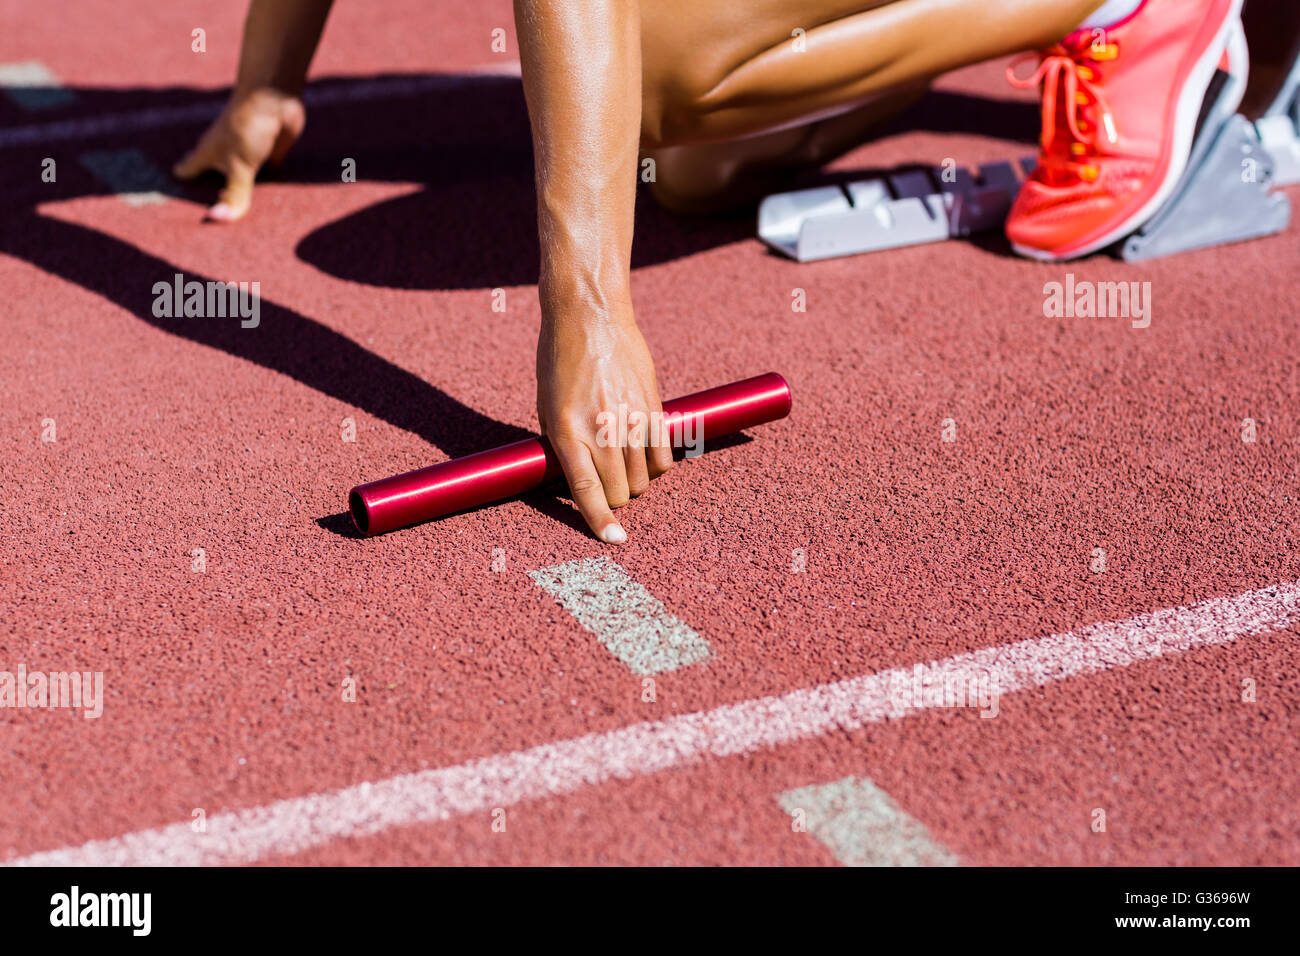 Female athlete ready to start the relay race - Stock Image